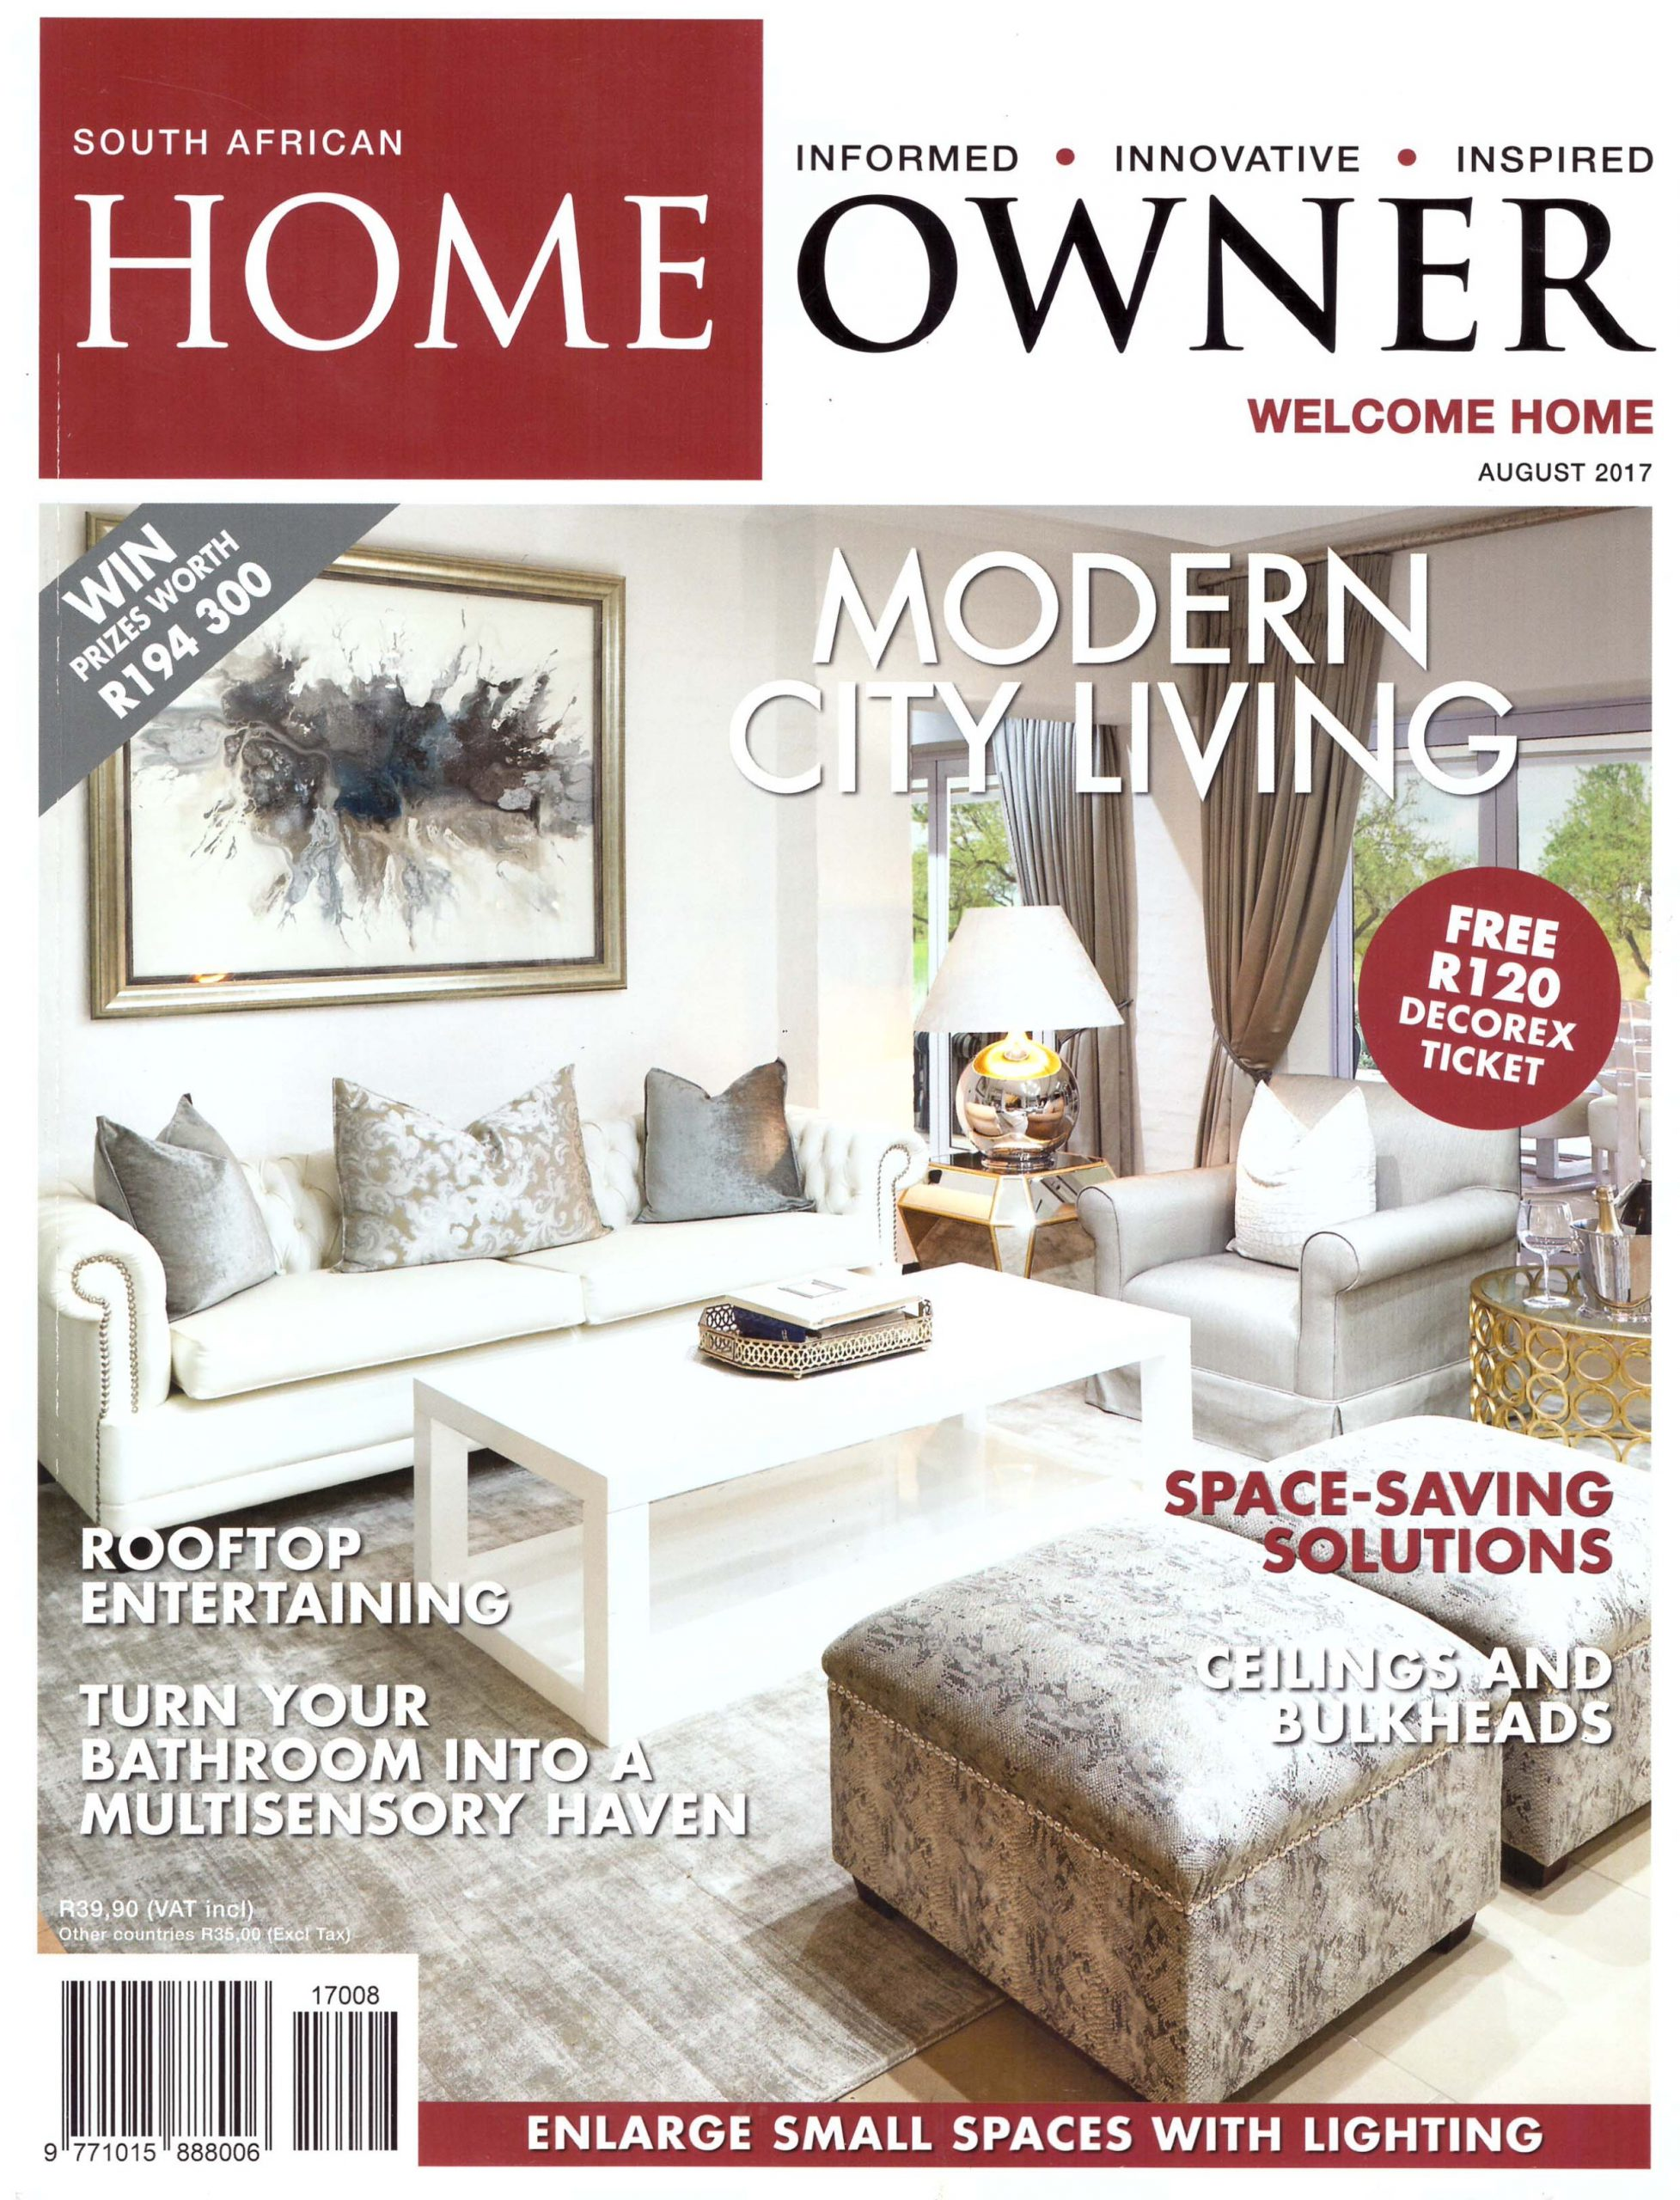 Home Owner 2017 cover